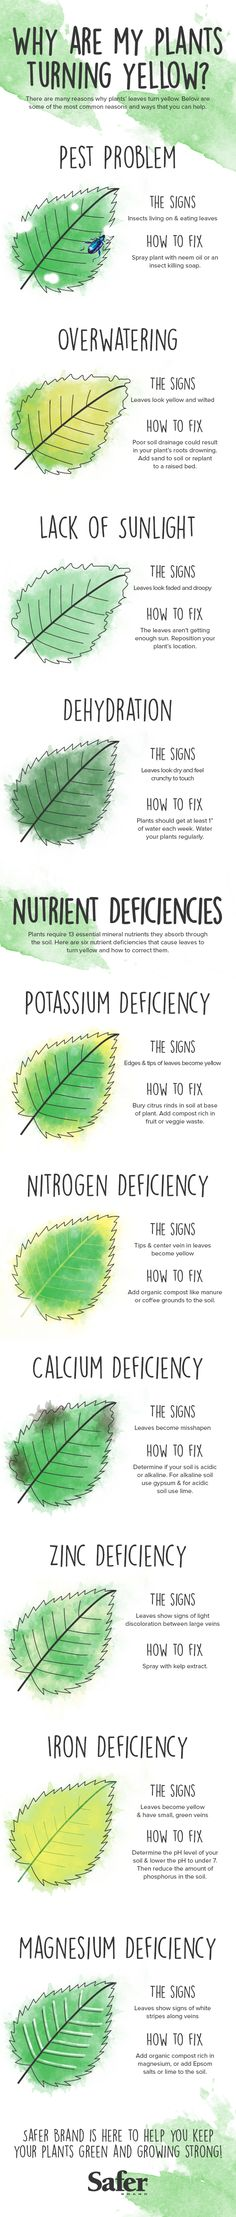 This infographic is a simple and pleasant guide to the common problems that your leafy friends might be running into.